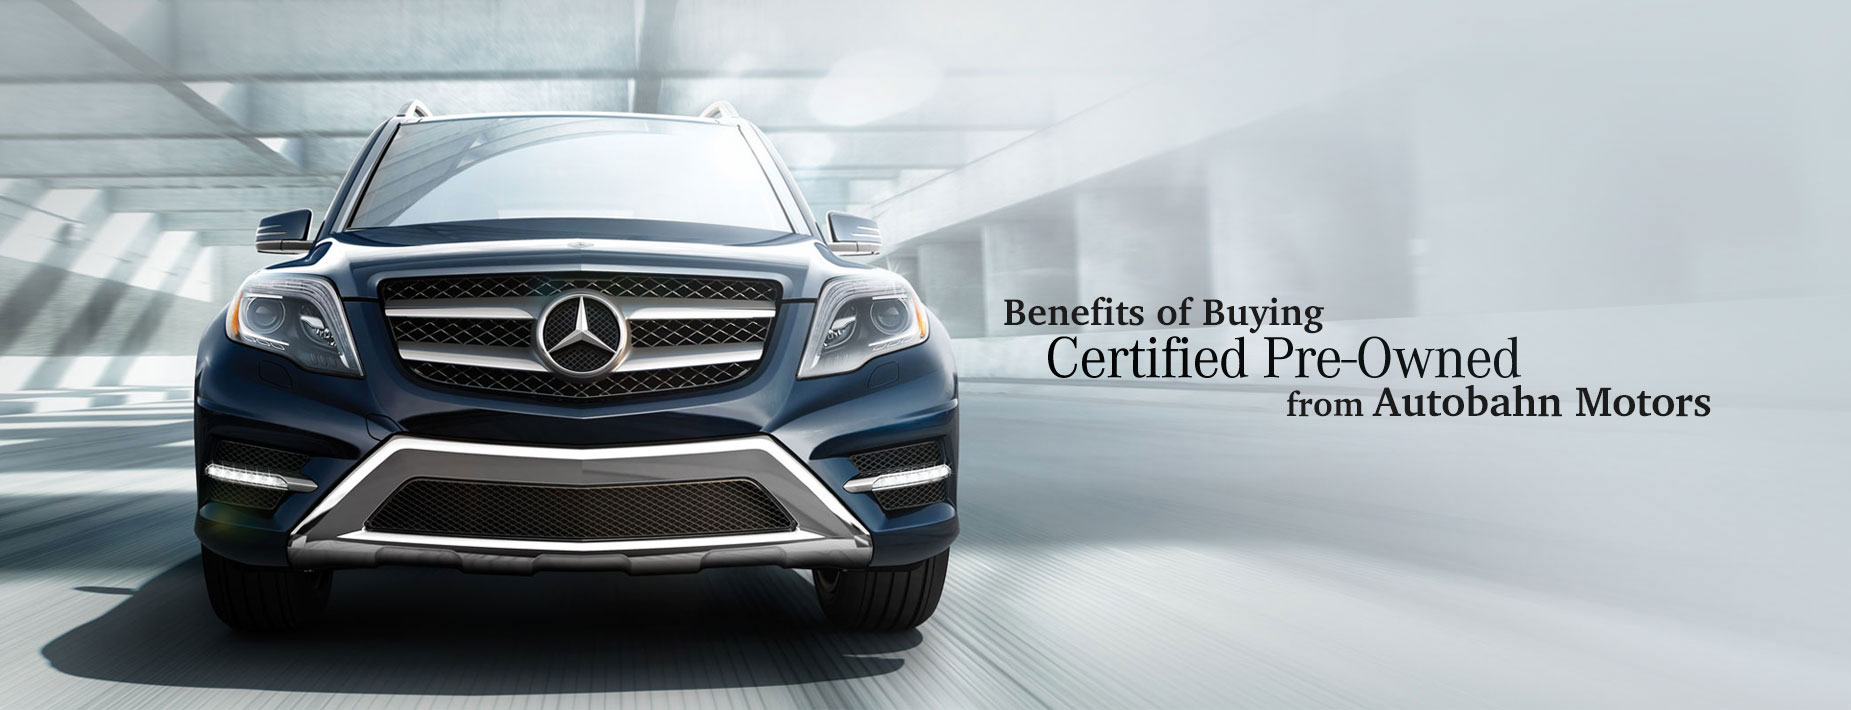 Autobahn motors new mercedes benz dealership in belmont for Mercedes benz cpo warranty coverage